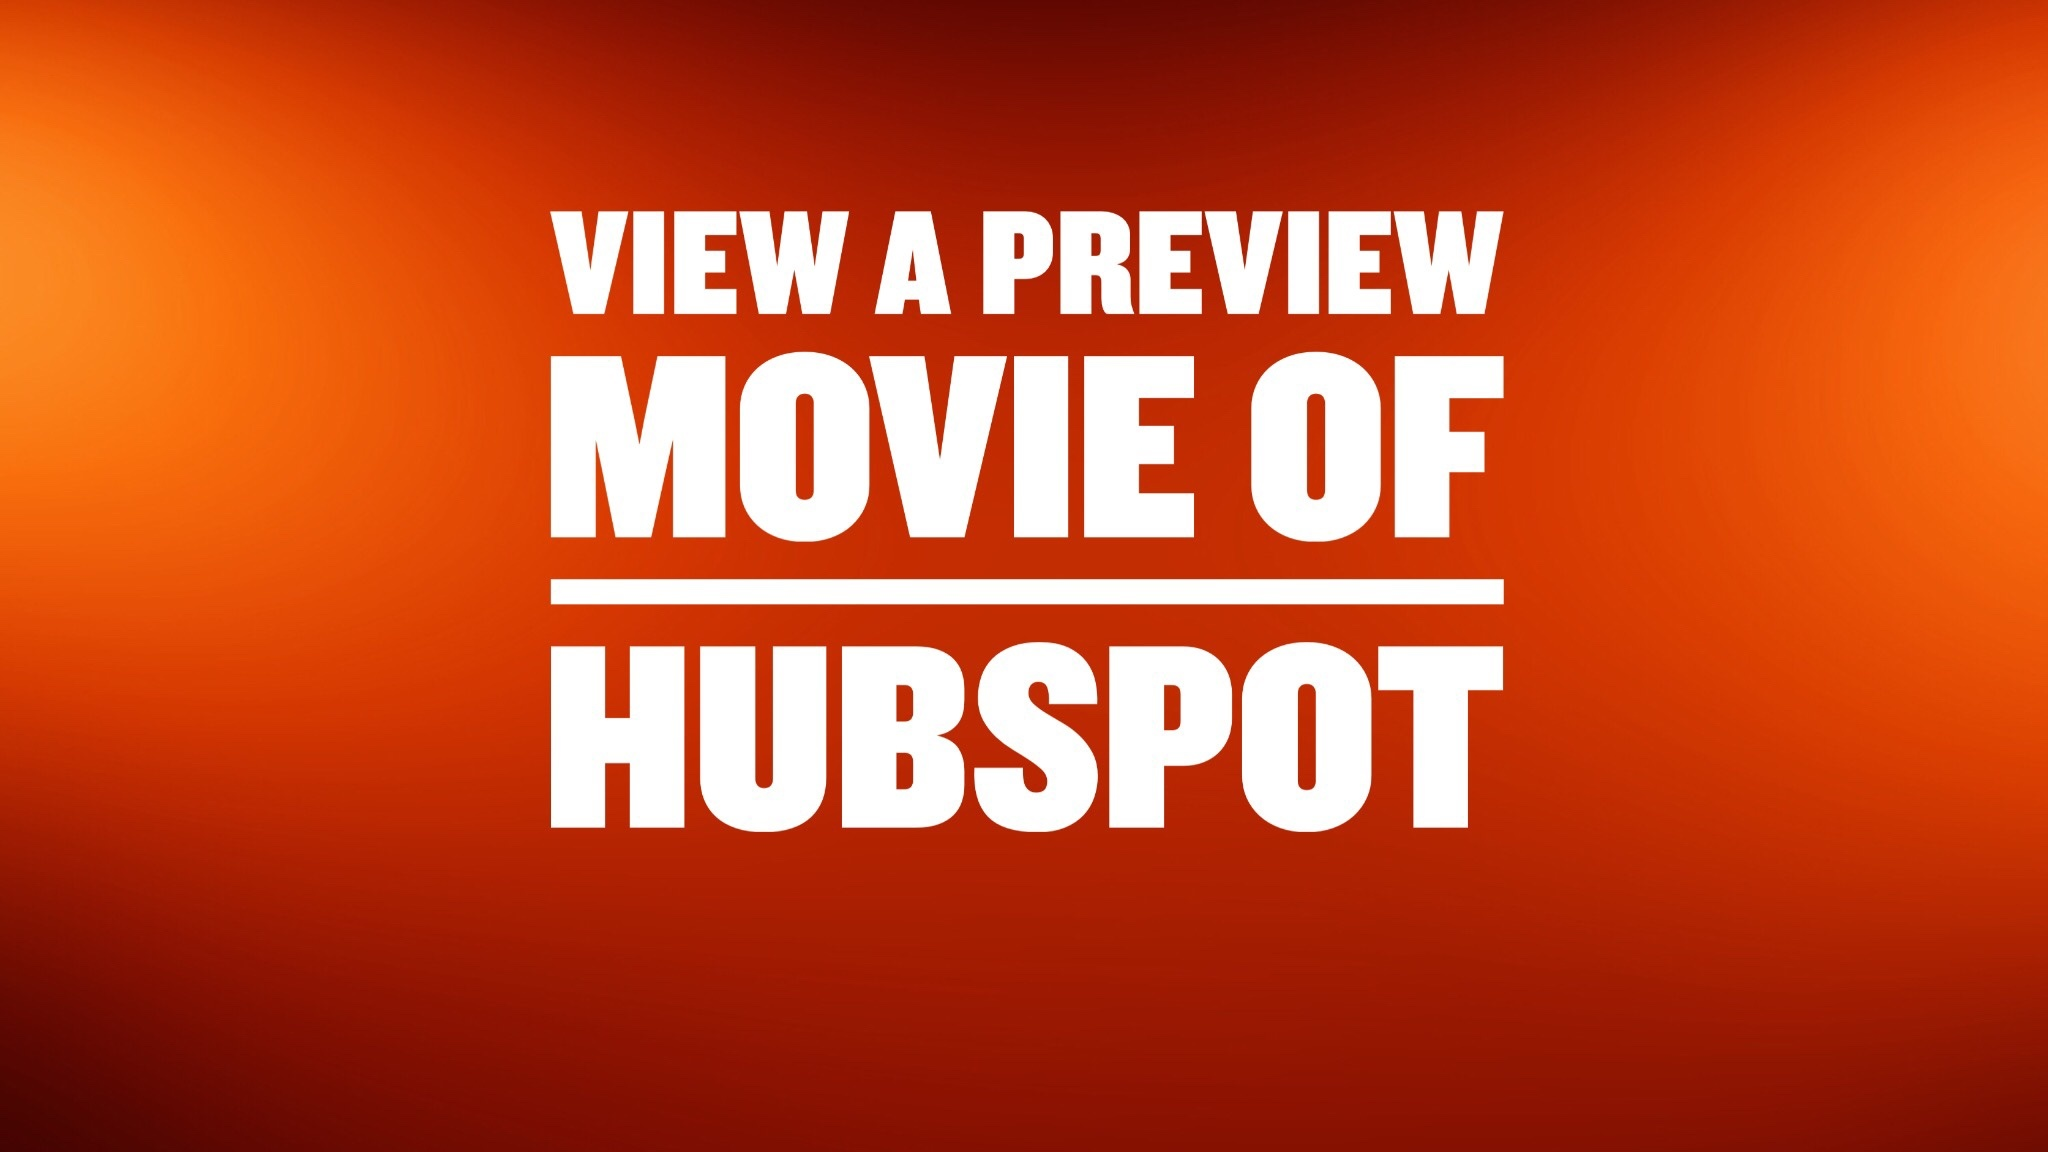 View a preview movie of HubSpot from The Kingdom